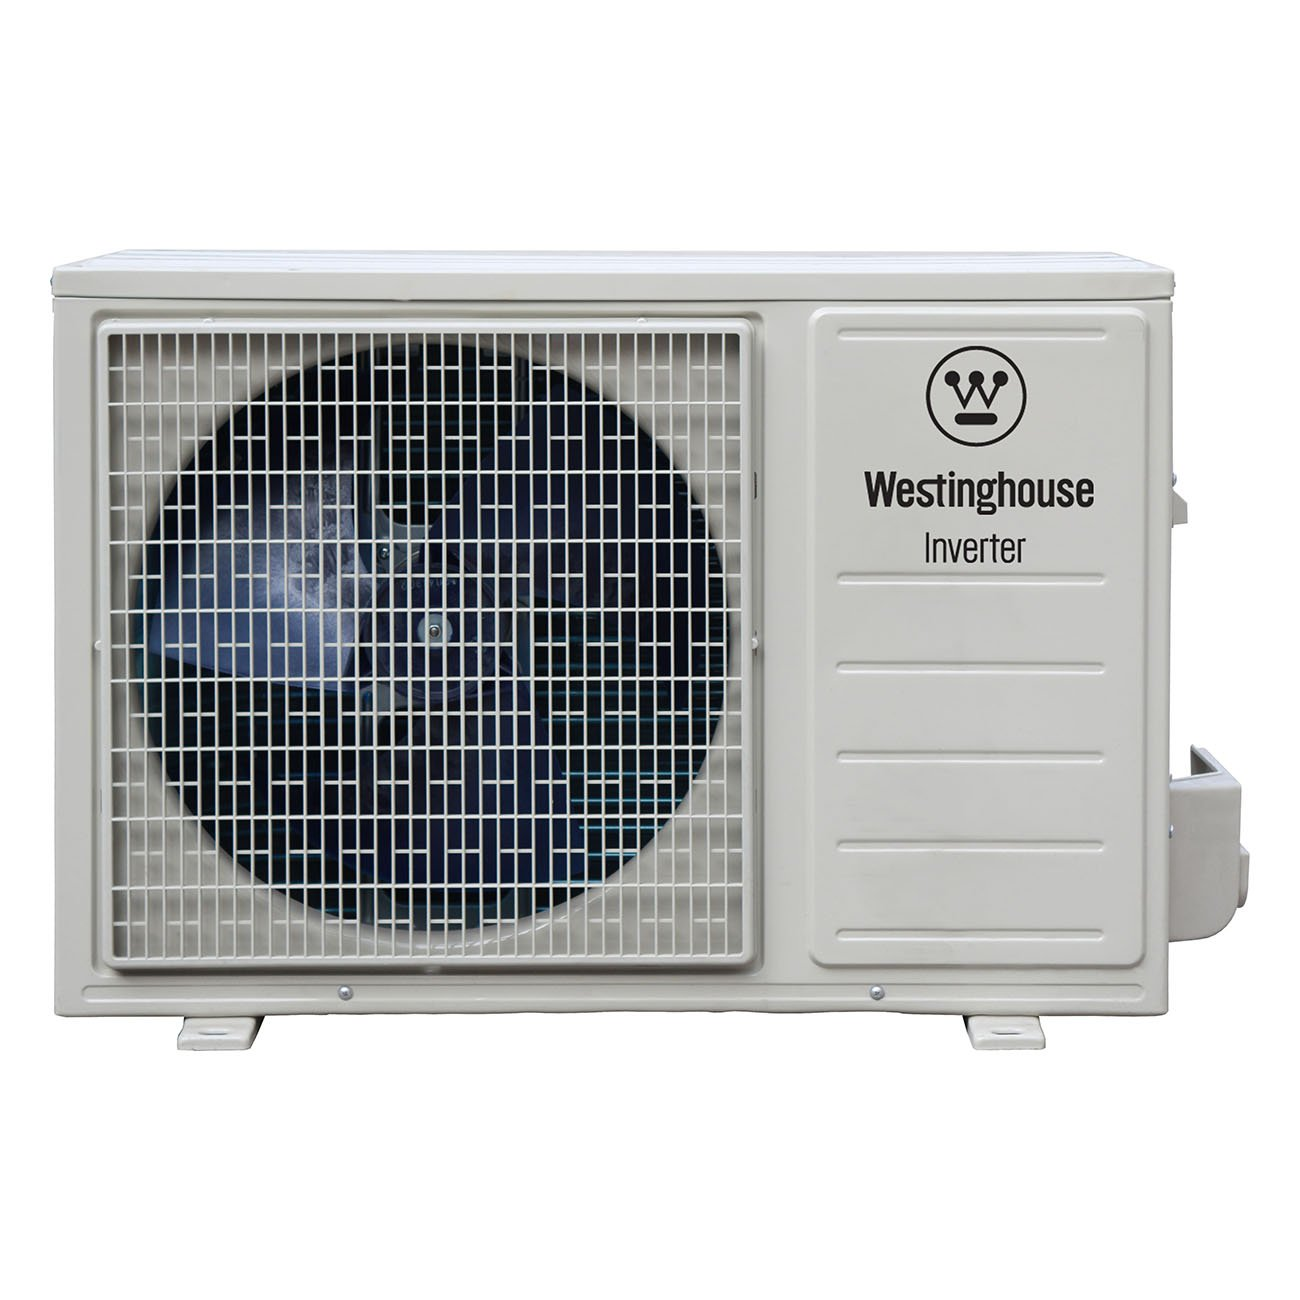 Amazon.com: Westinghouse 12000 BTU 15 SEER Ductless Mini Split Air Conditioner & Heat Pump: Home & Kitchen